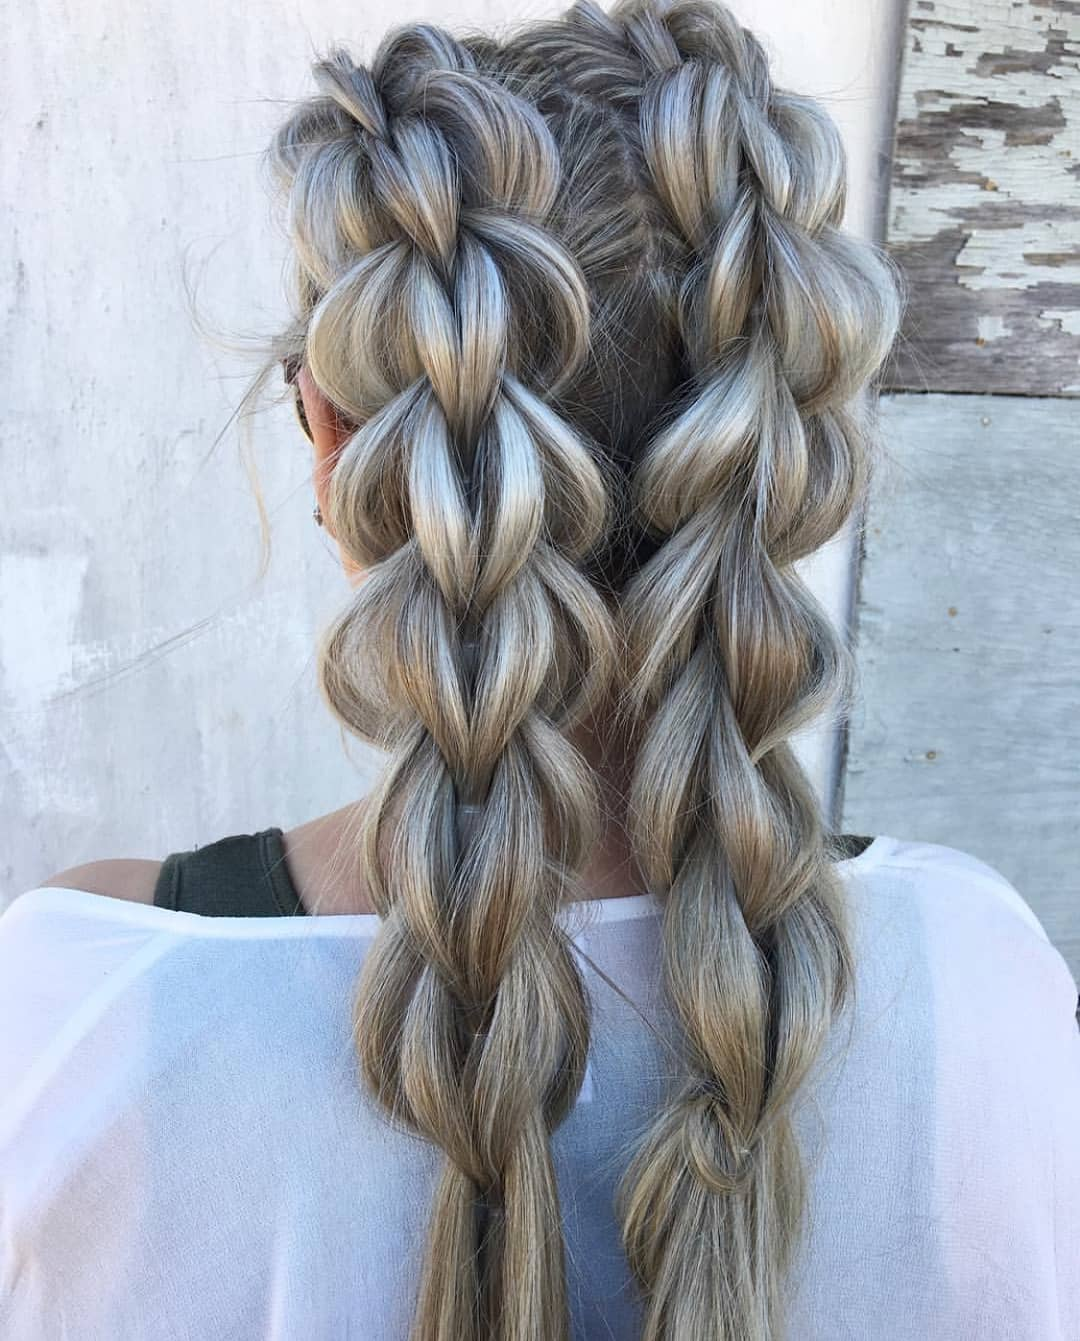 Two-Braid-Hairstyle-on-Medium-Length-Hair Most Amazing Medium Braided Hairstyles